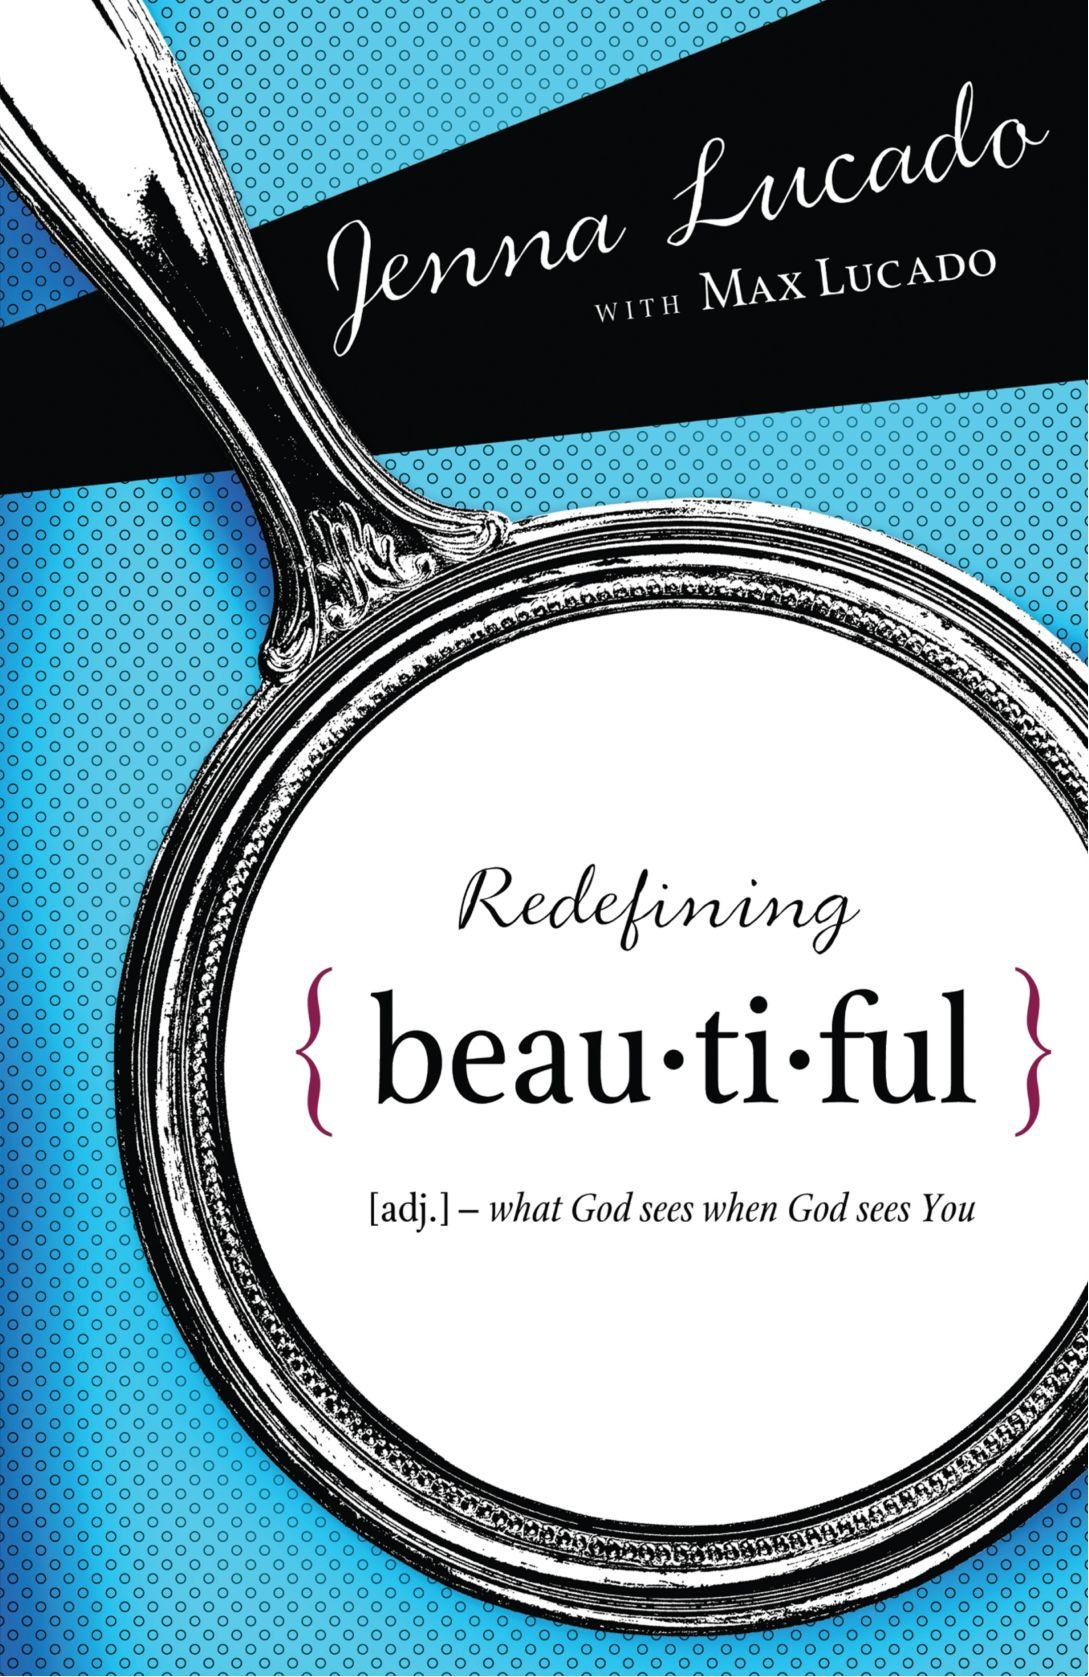 Amazon.com: Redefining Beautiful: What God Sees When God Sees You  (9781400314287): Jenna Lucado Bishop, Max Lucado: Books